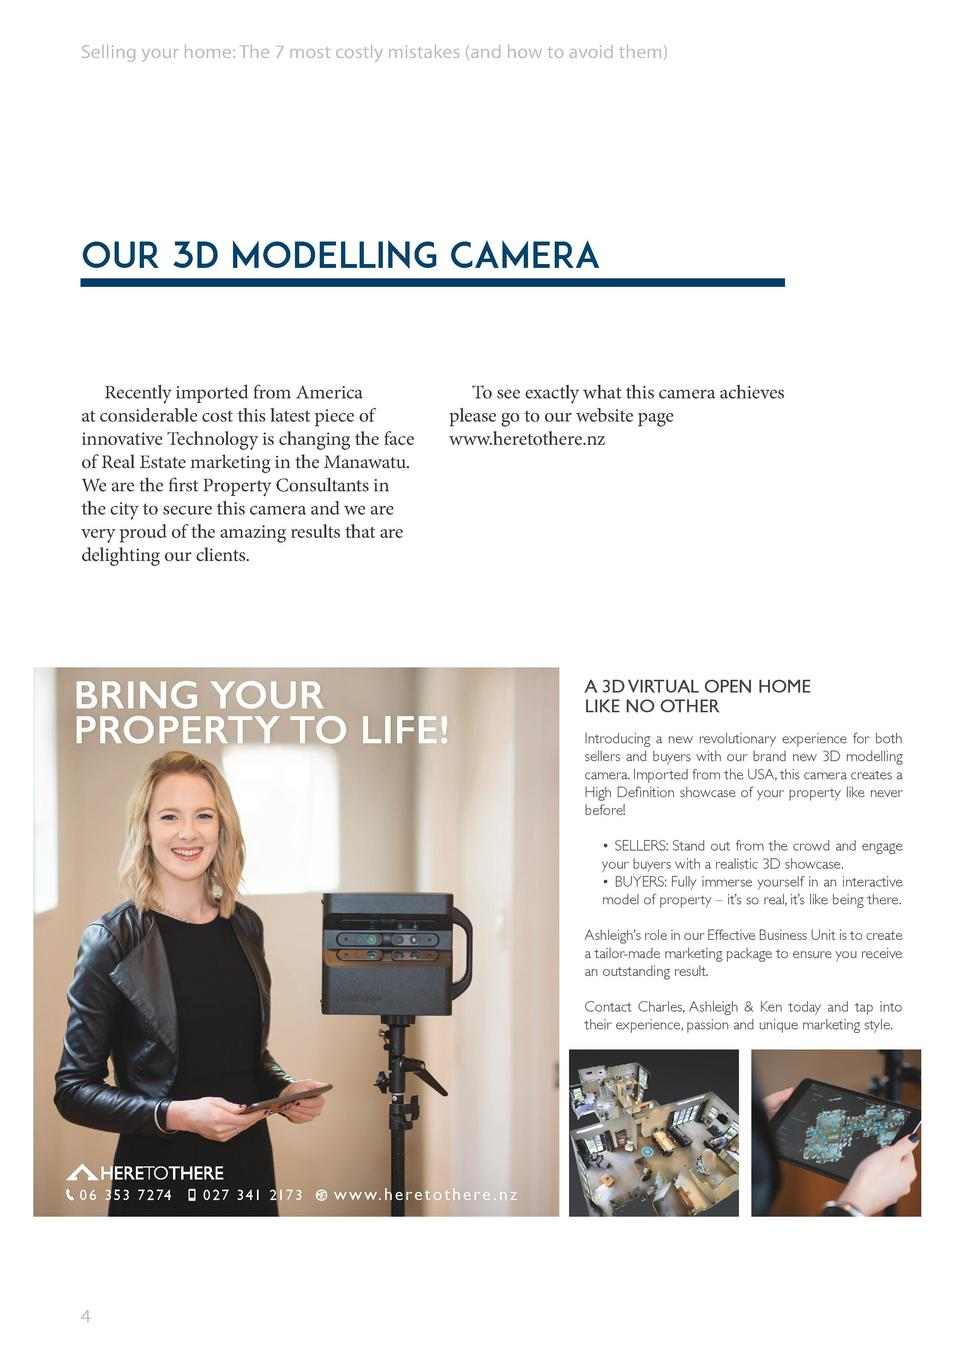 Selling your home  The 7 most costly mistakes  and how to avoid them   Our 3D Modelling Camera  Recently imported from Ame...